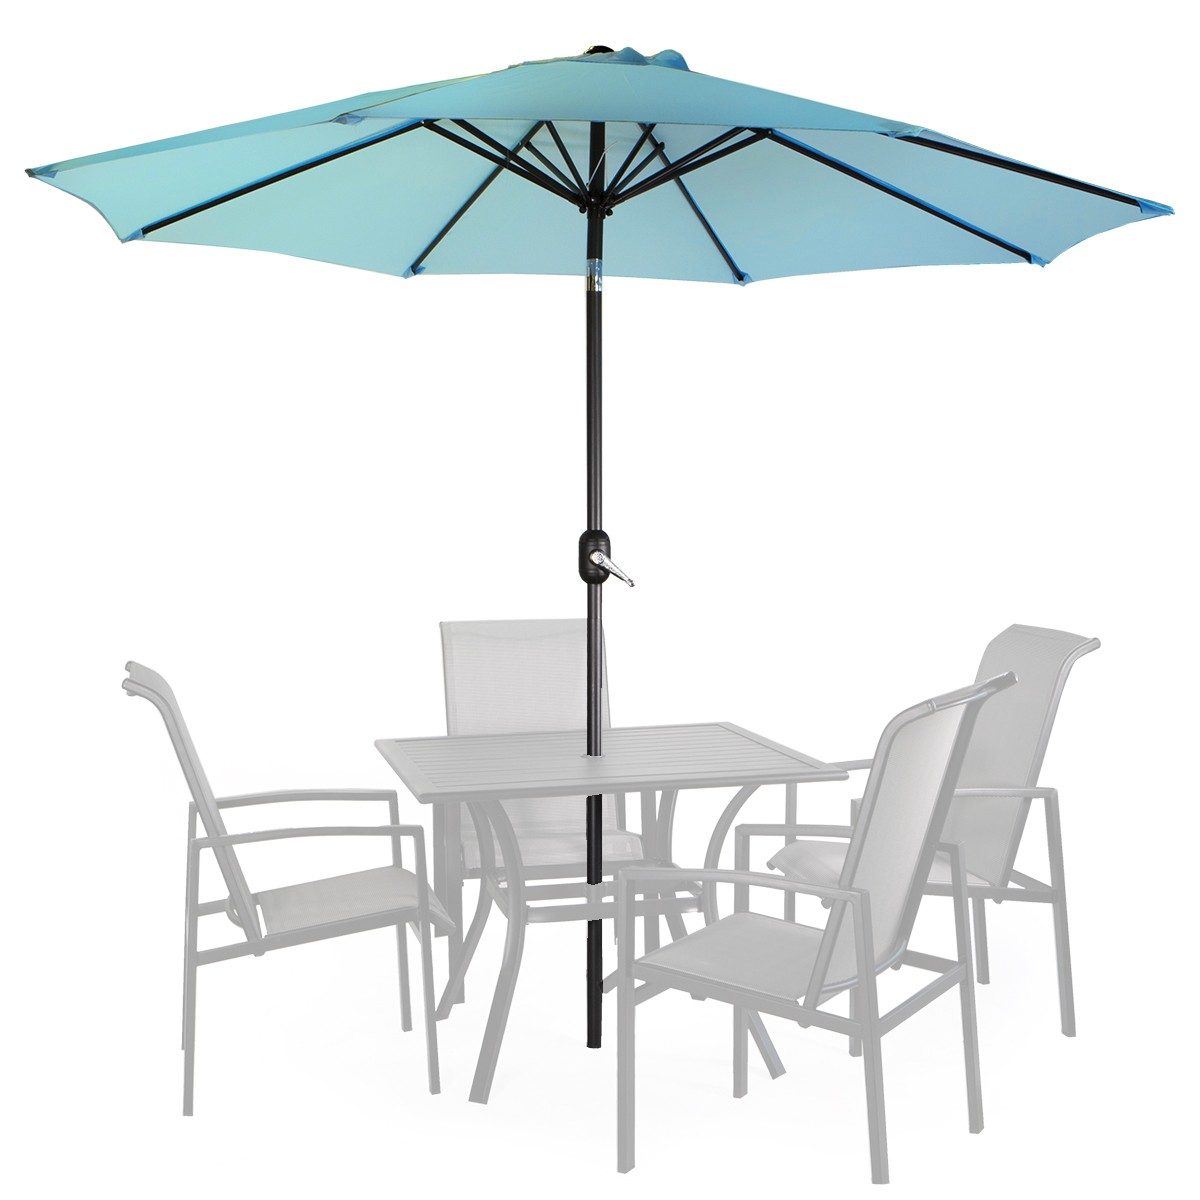 9' Patio Umbrella Round Sunshade Outdoor Canopy Tilt and Crank - Blue